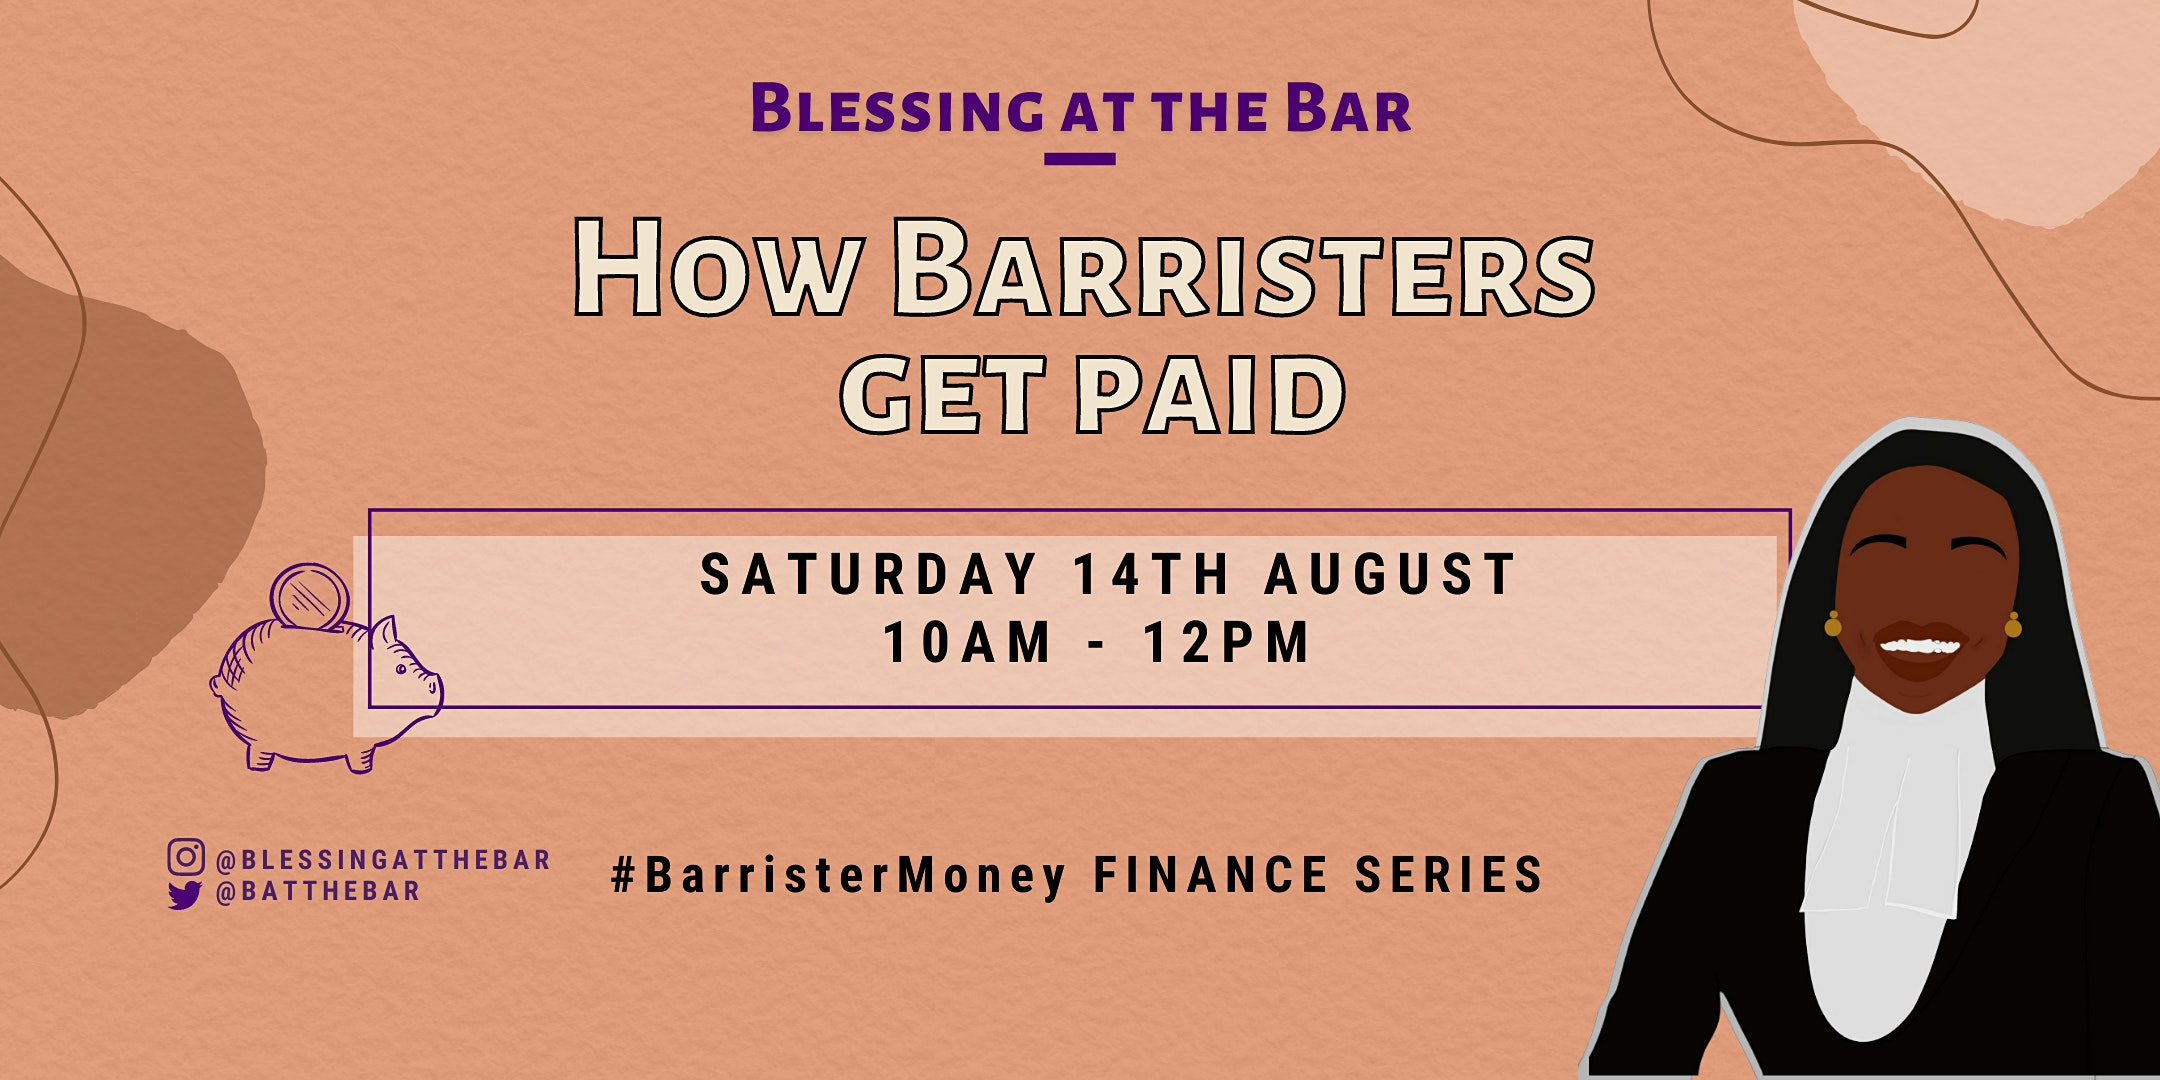 BATB FINANCE SERIES: How Barristers Get Paid